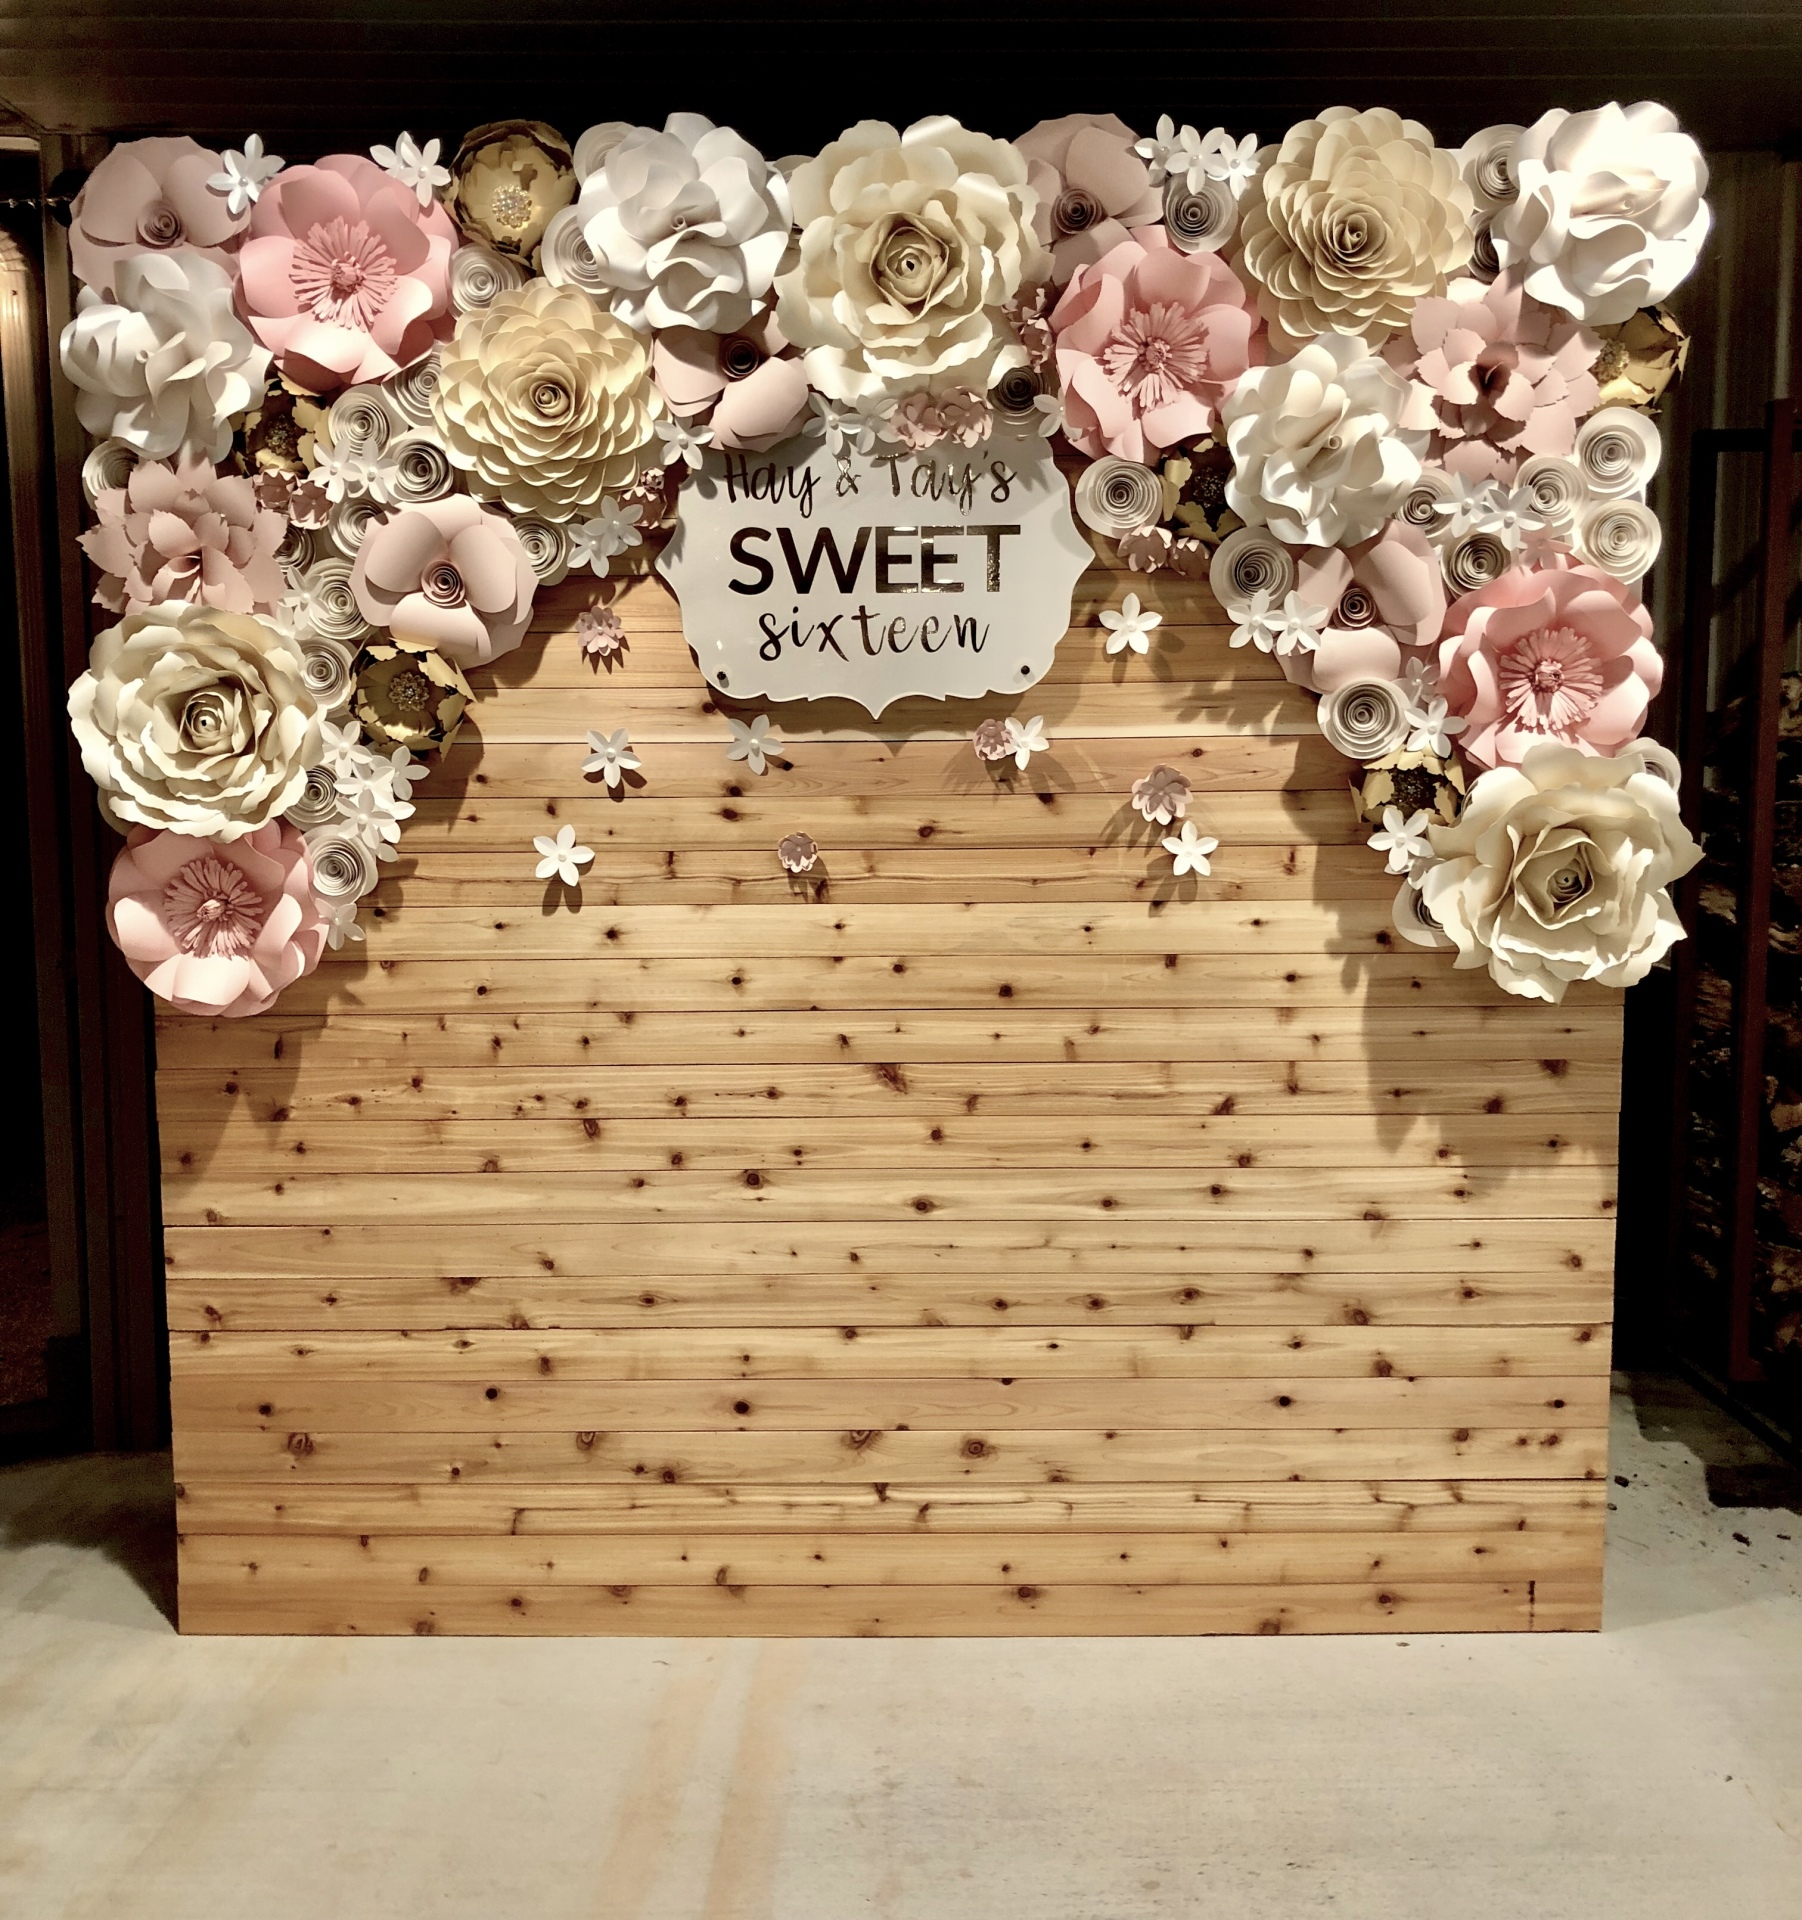 Sweet sixteen decor, rustic sweet sixteen, rustic party decor